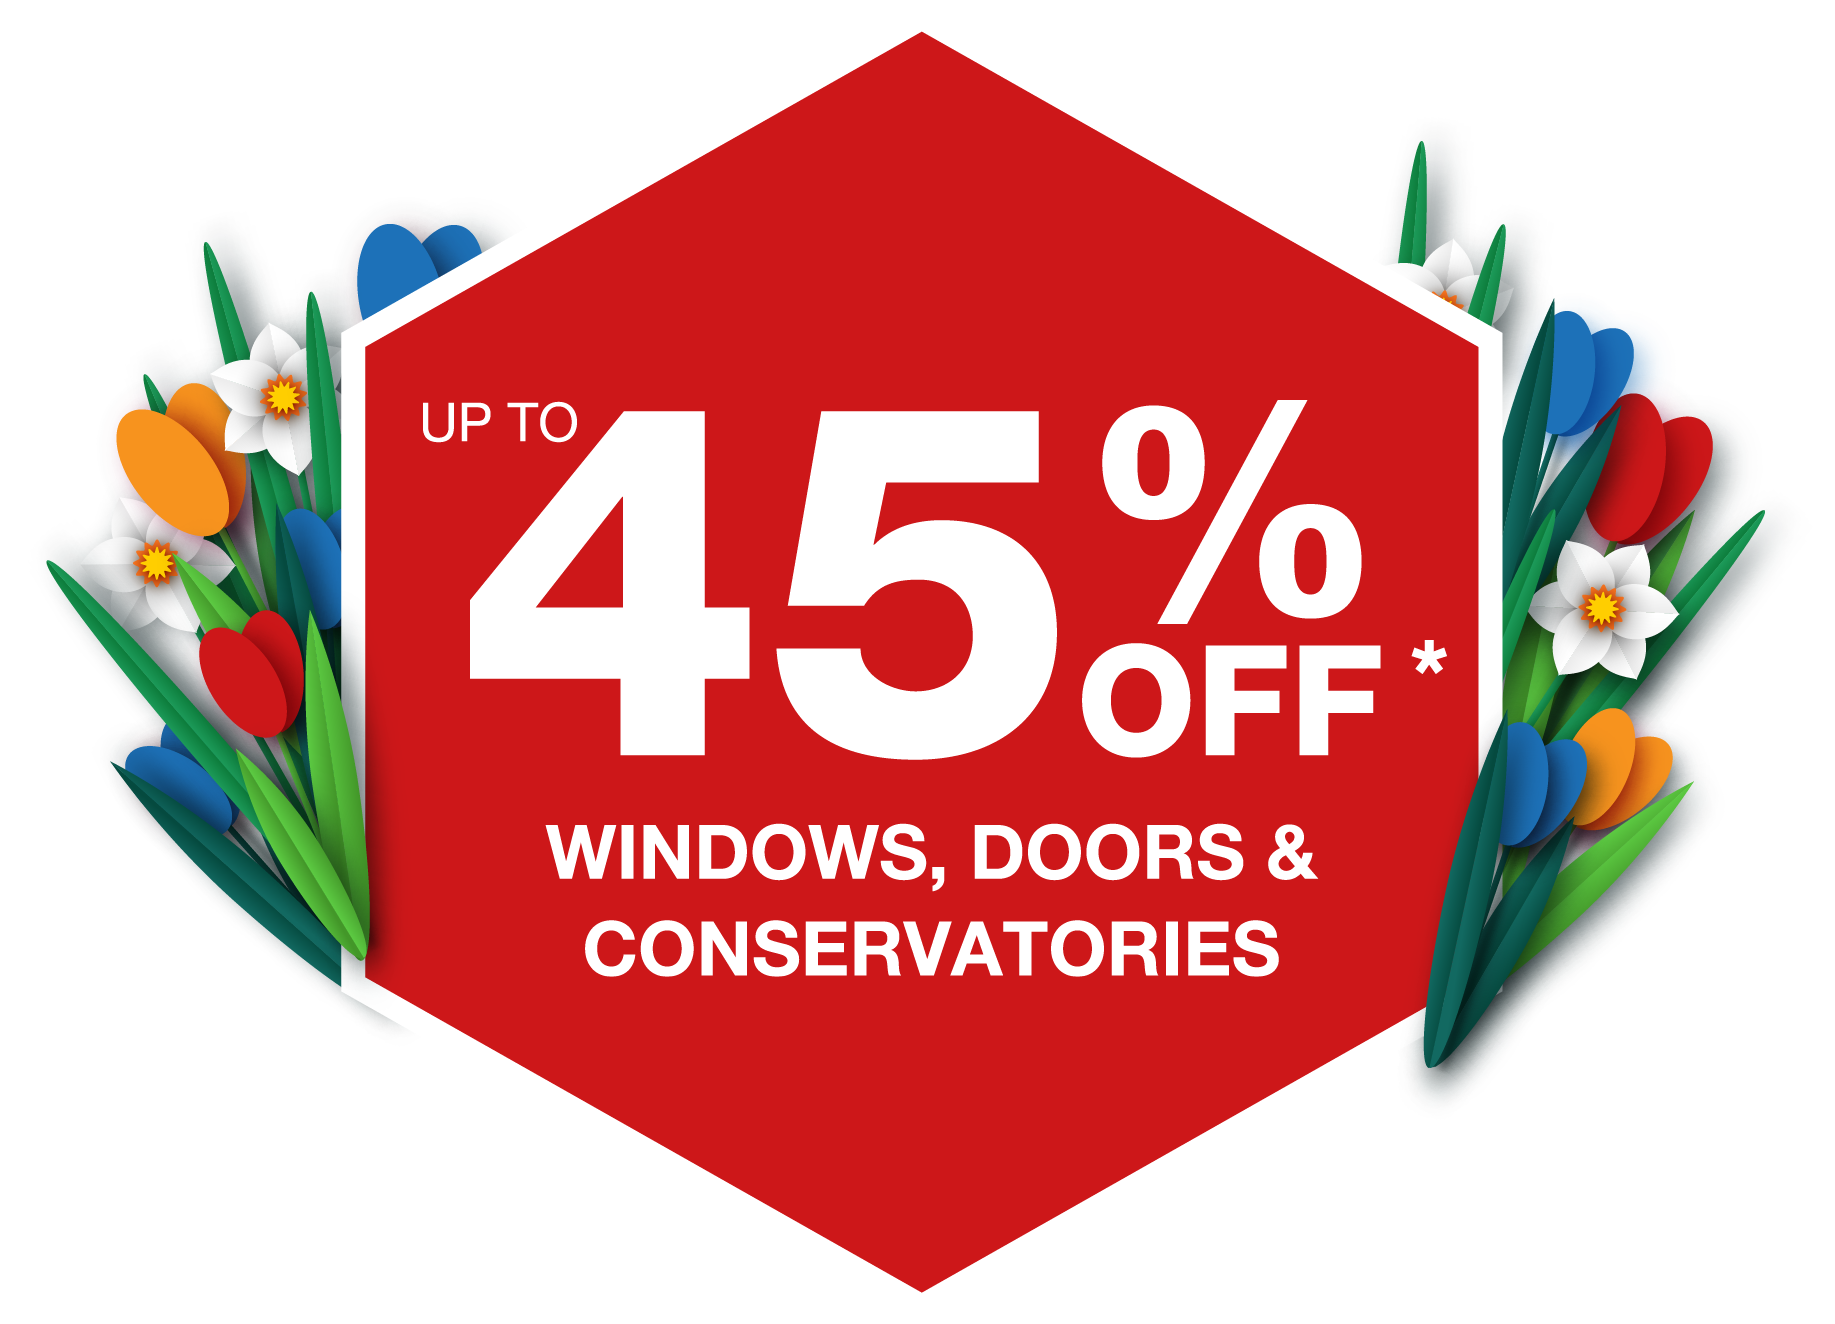 Up to 40% off Windows, Doors & Conservatories